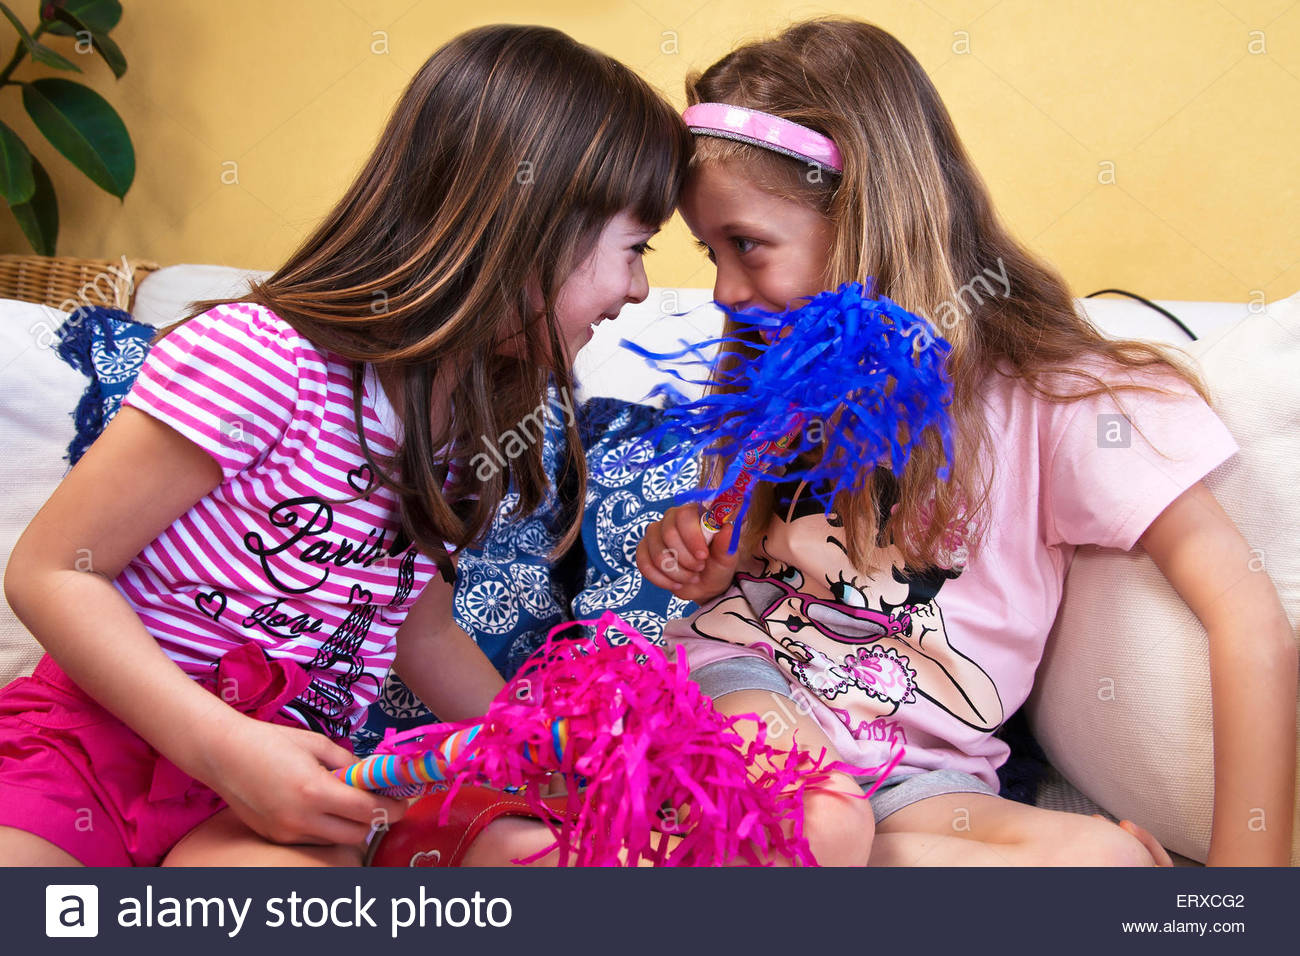 Girls during birthday party - Stock Image